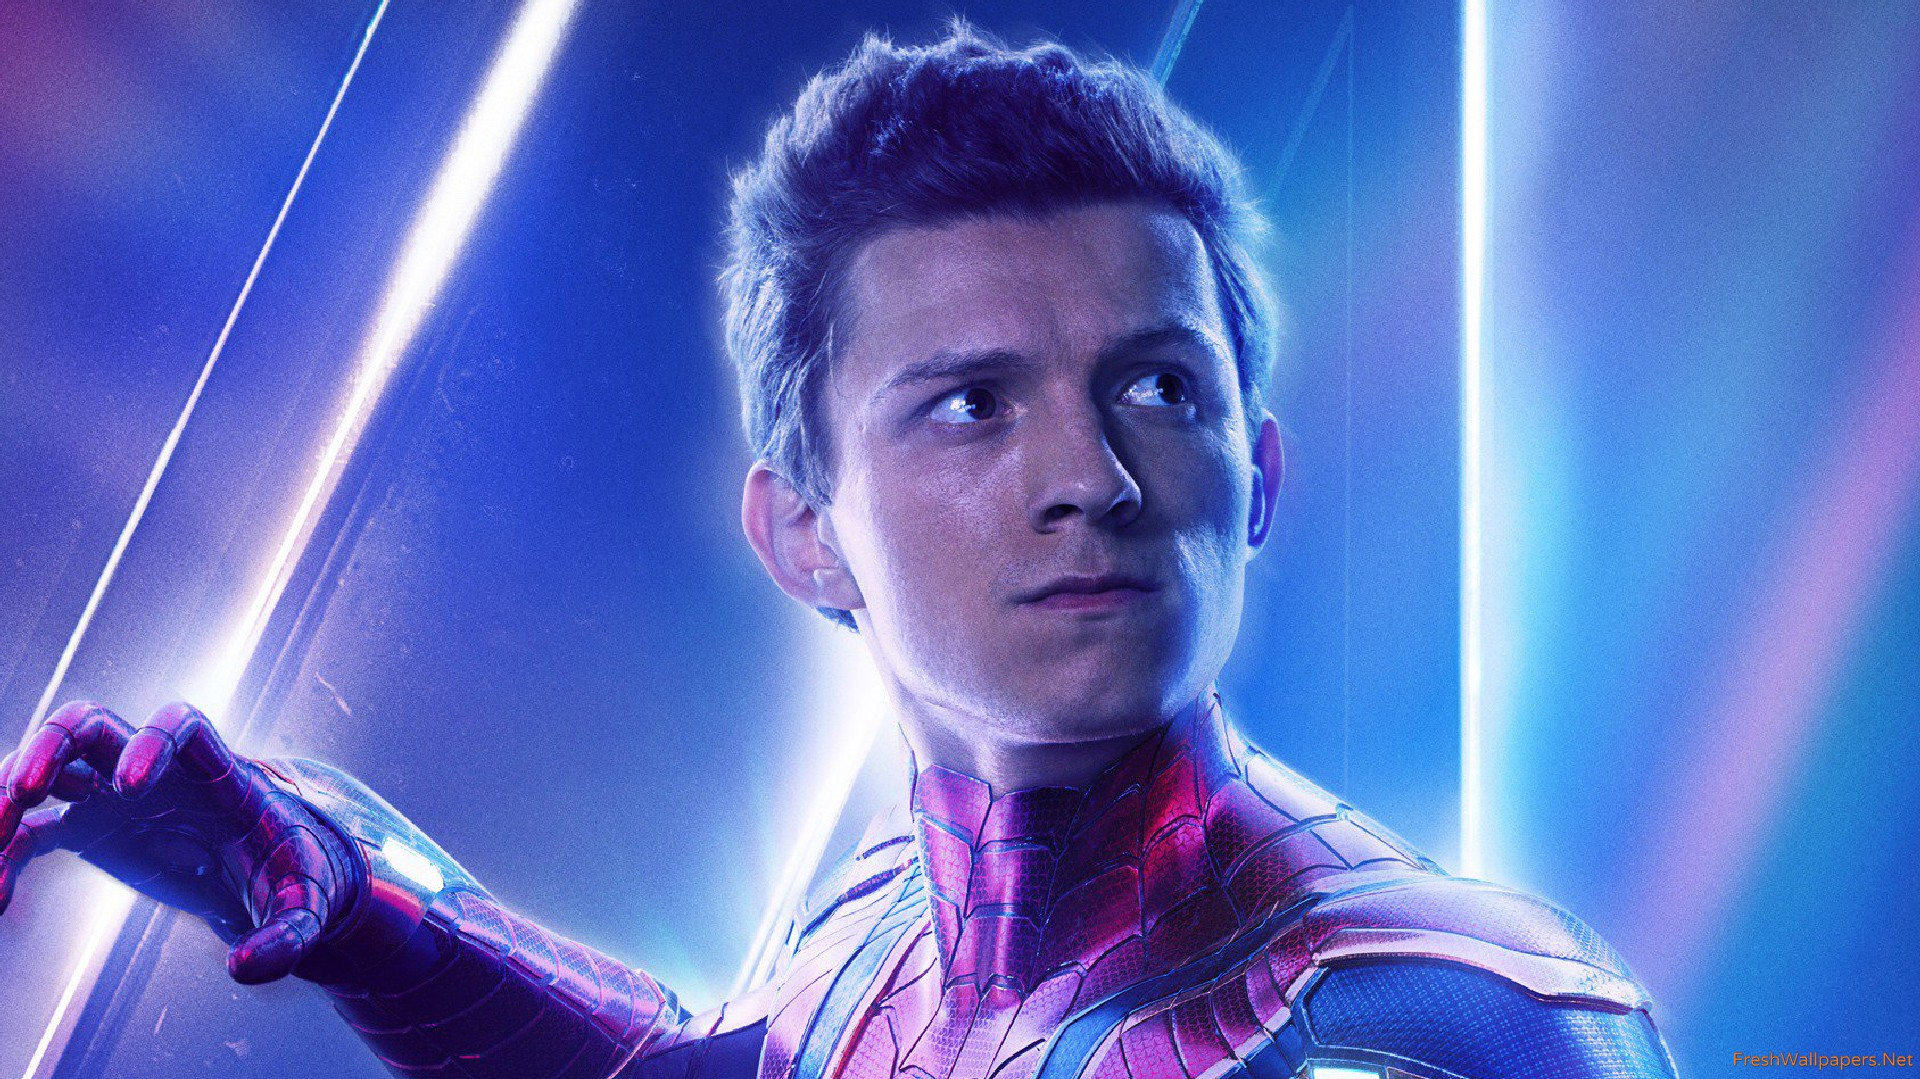 Spiderman In Avengers Infinity War New Poster